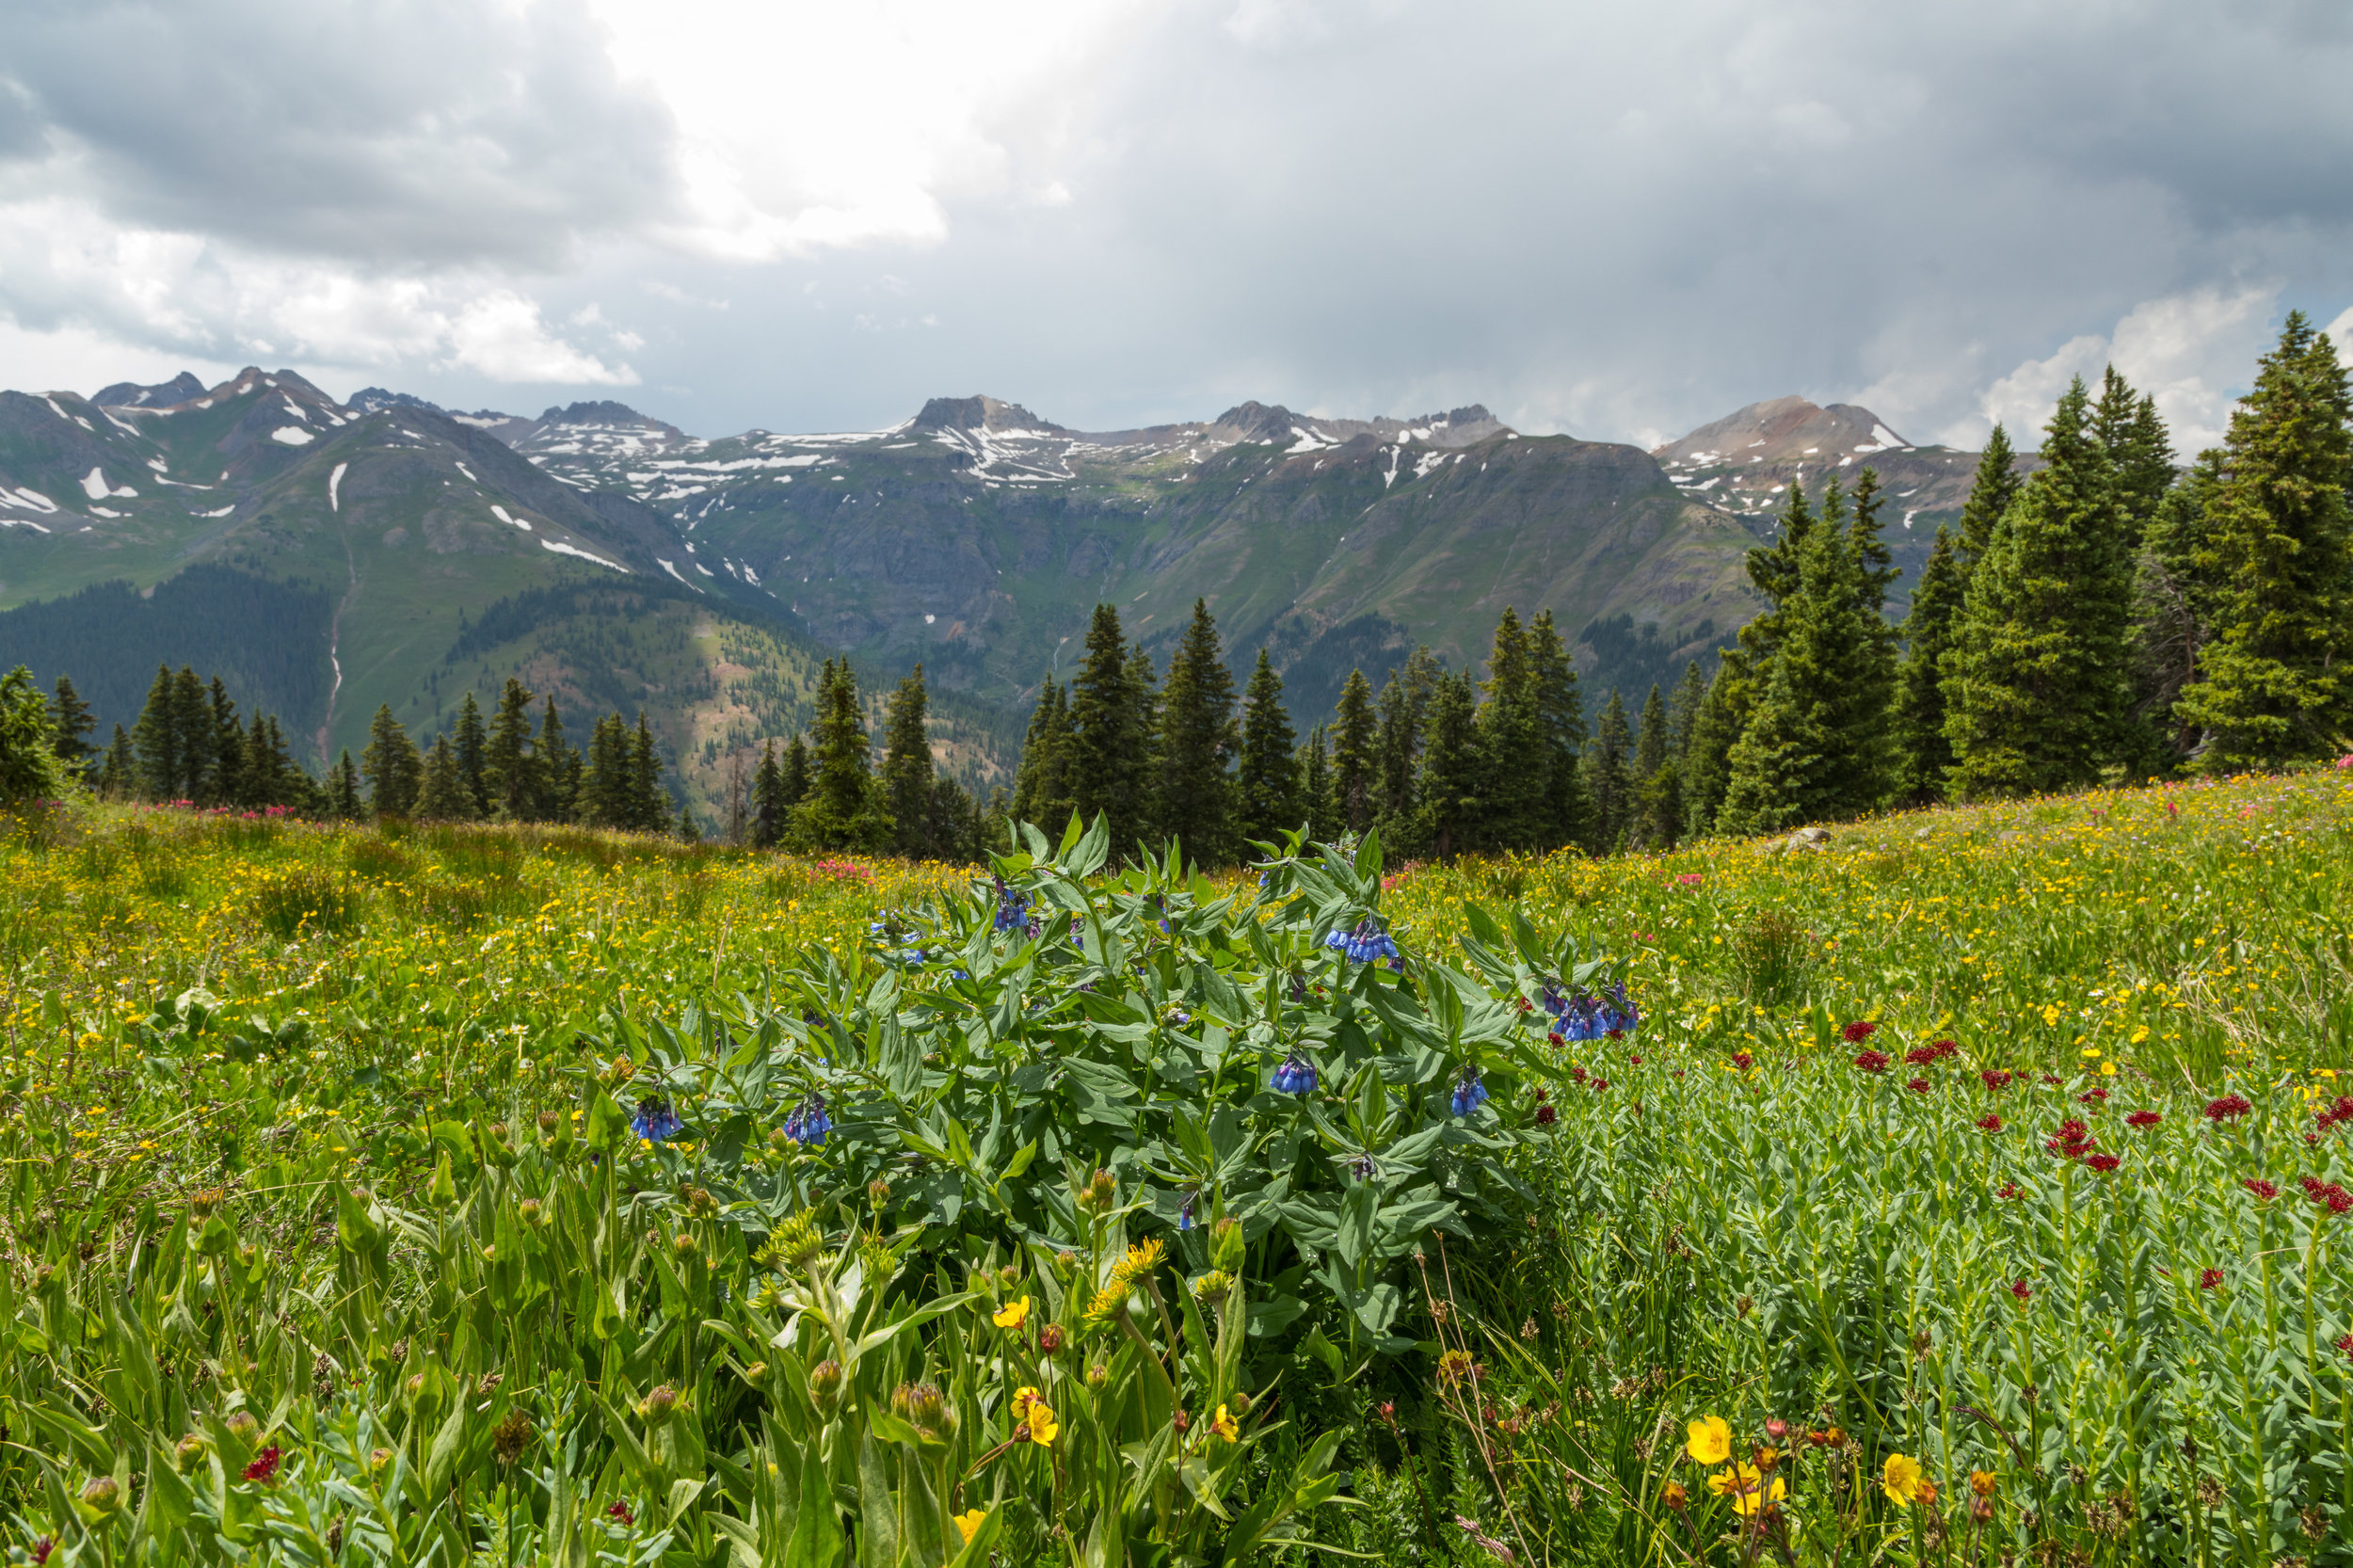 Browns Gulch Road, Image # 0684